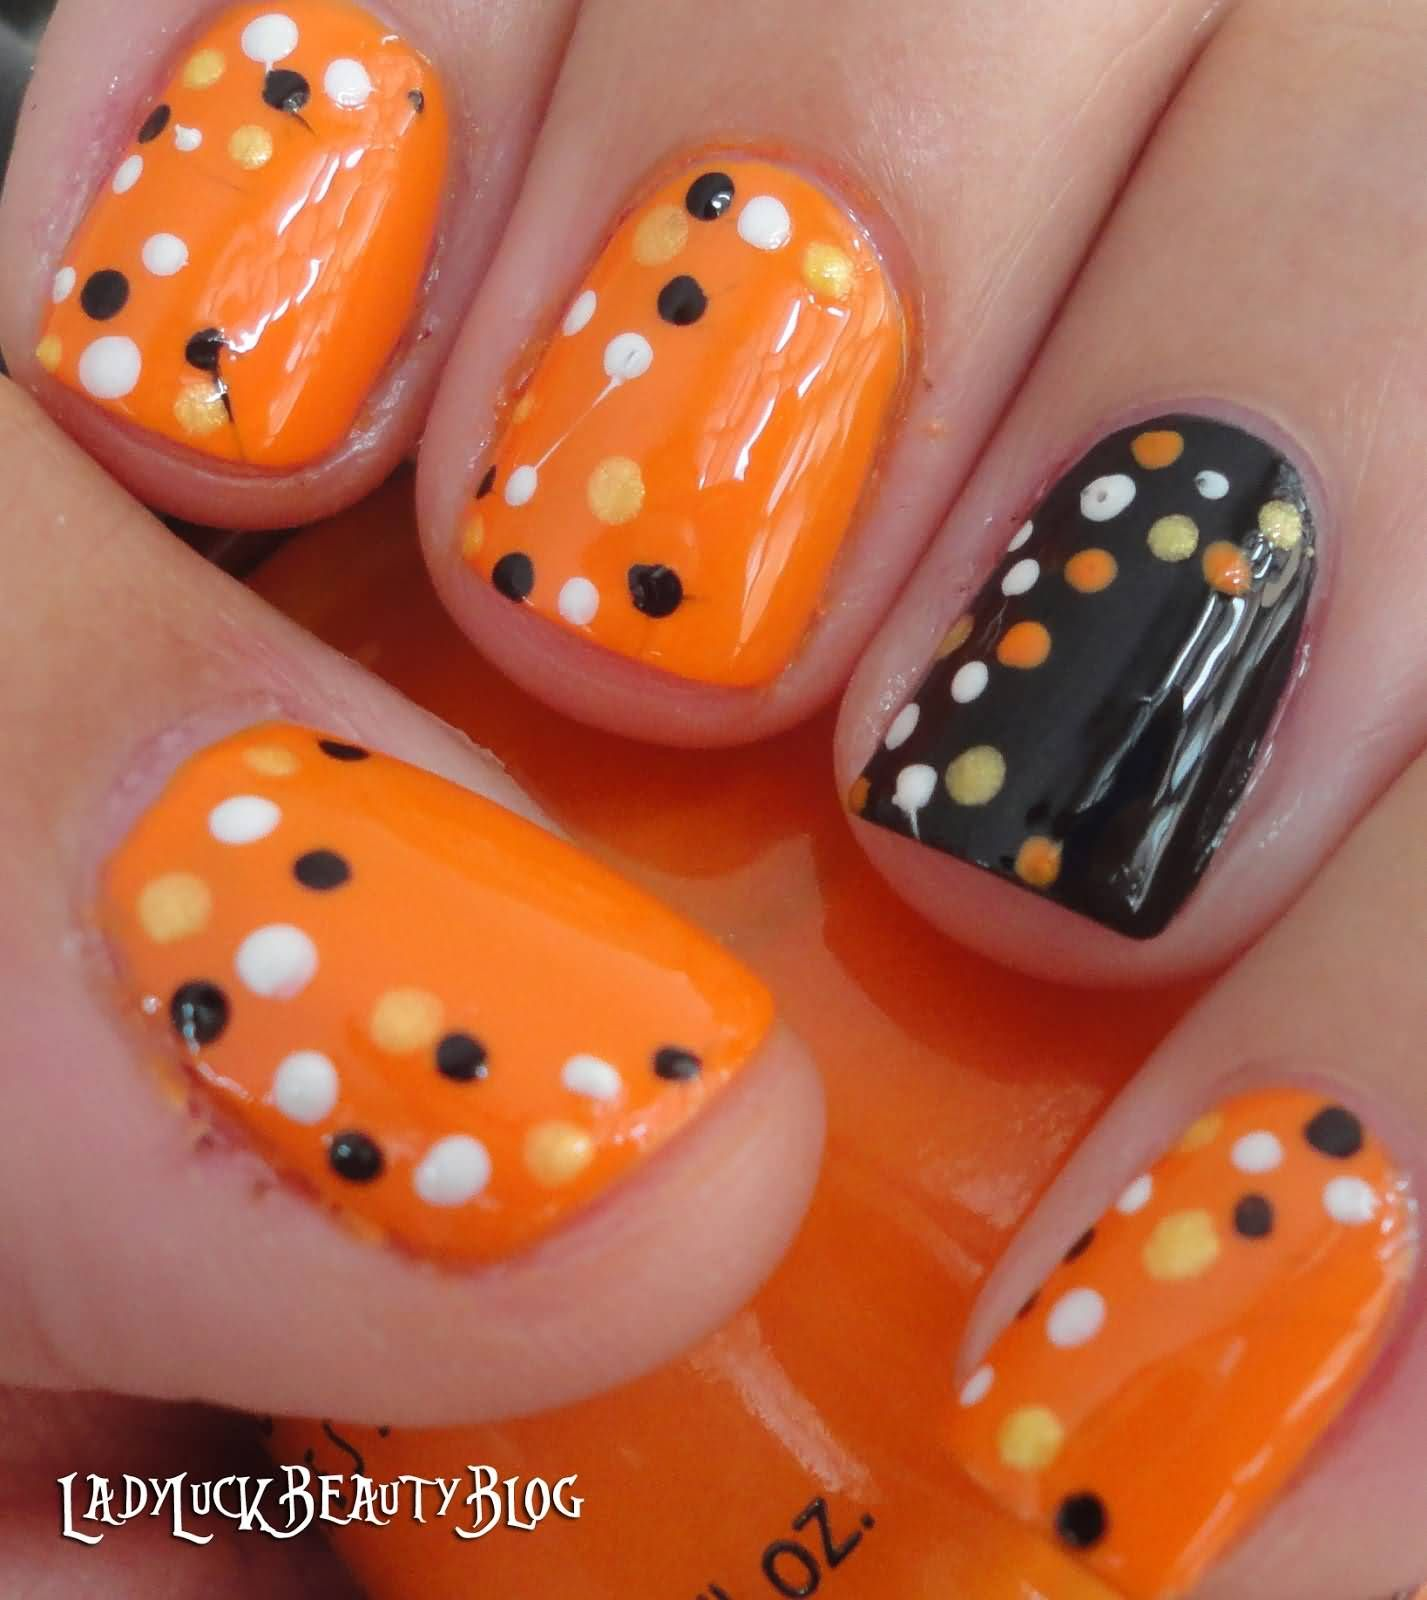 Orange base nails with white black and yellow dots design nail art orange base nails with white black and yellow dots design nail art prinsesfo Image collections